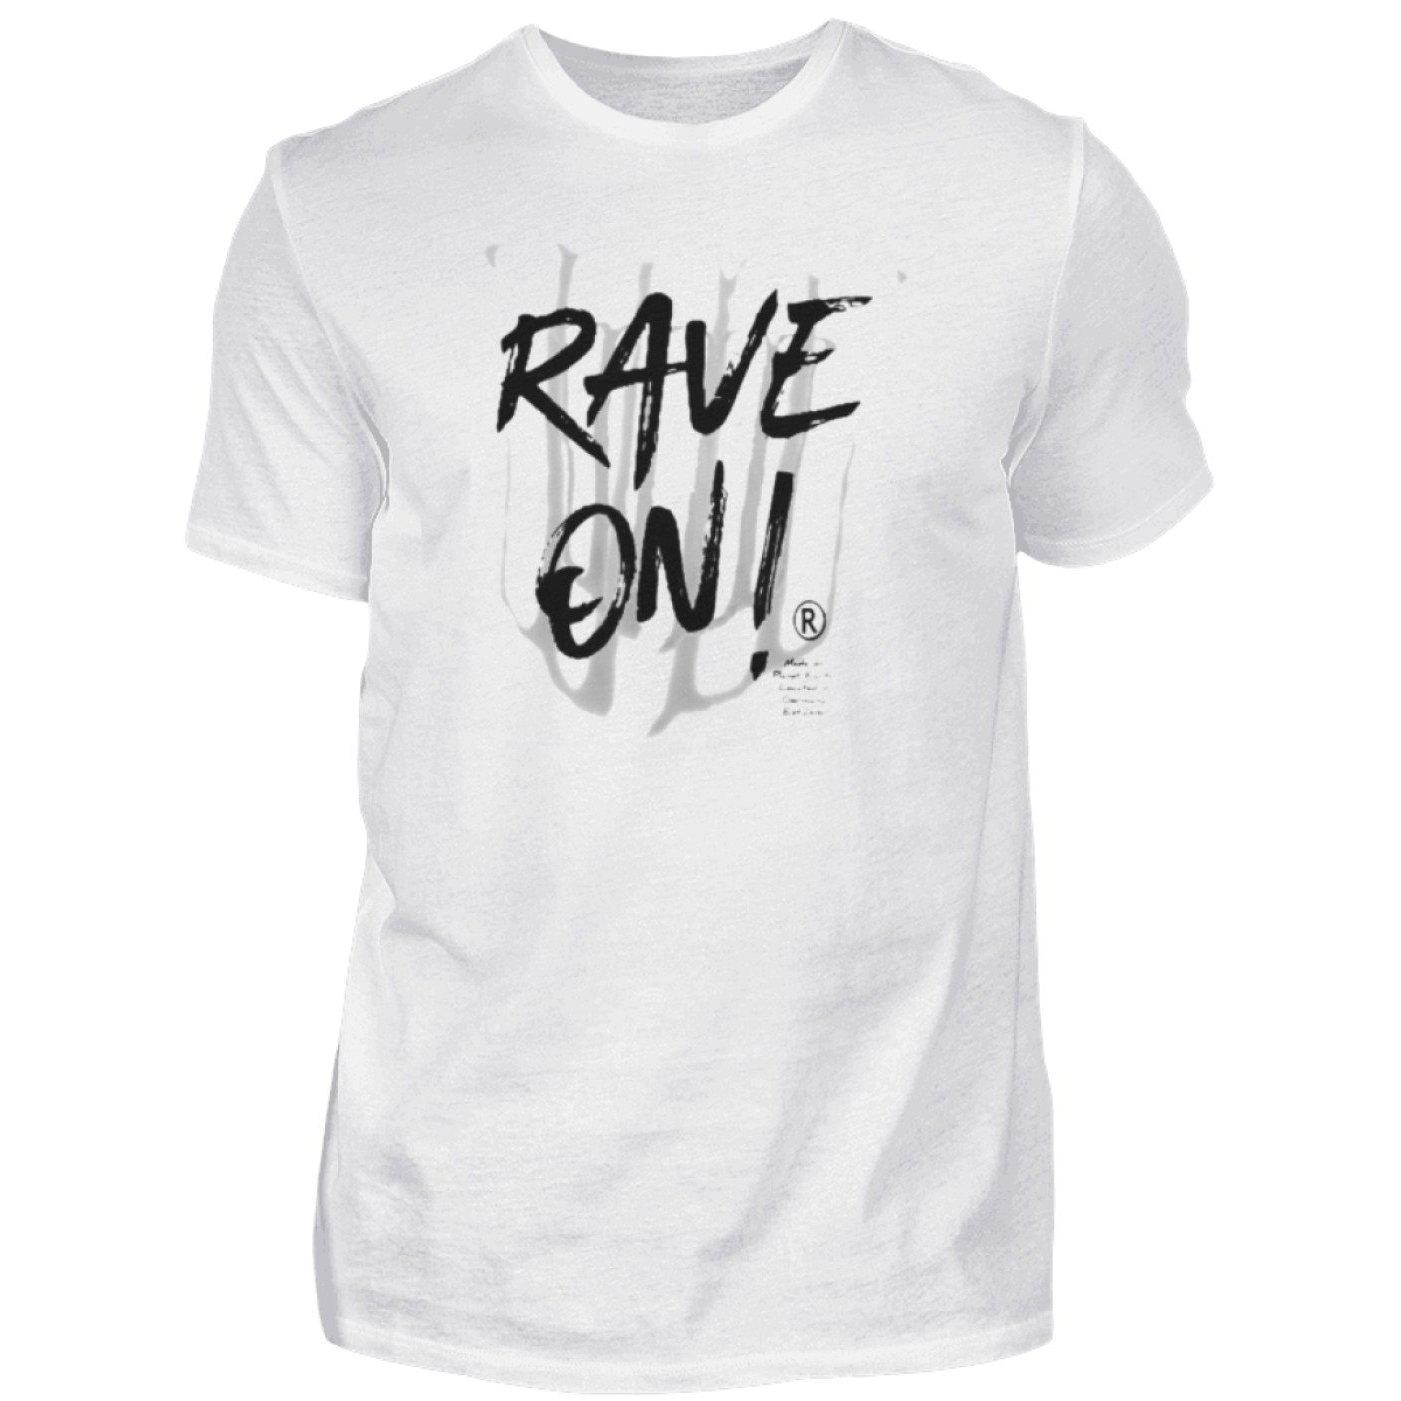 Rave On!® - Made On Planet Earth W2k20 - Herren Premiumshirt Herren Premium Shirt White / S - Rave On!® der Club & Techno Szene Shop für Coole Junge Mode Streetwear Style & Fashion Outfits + Sexy Festival 420 Stuff